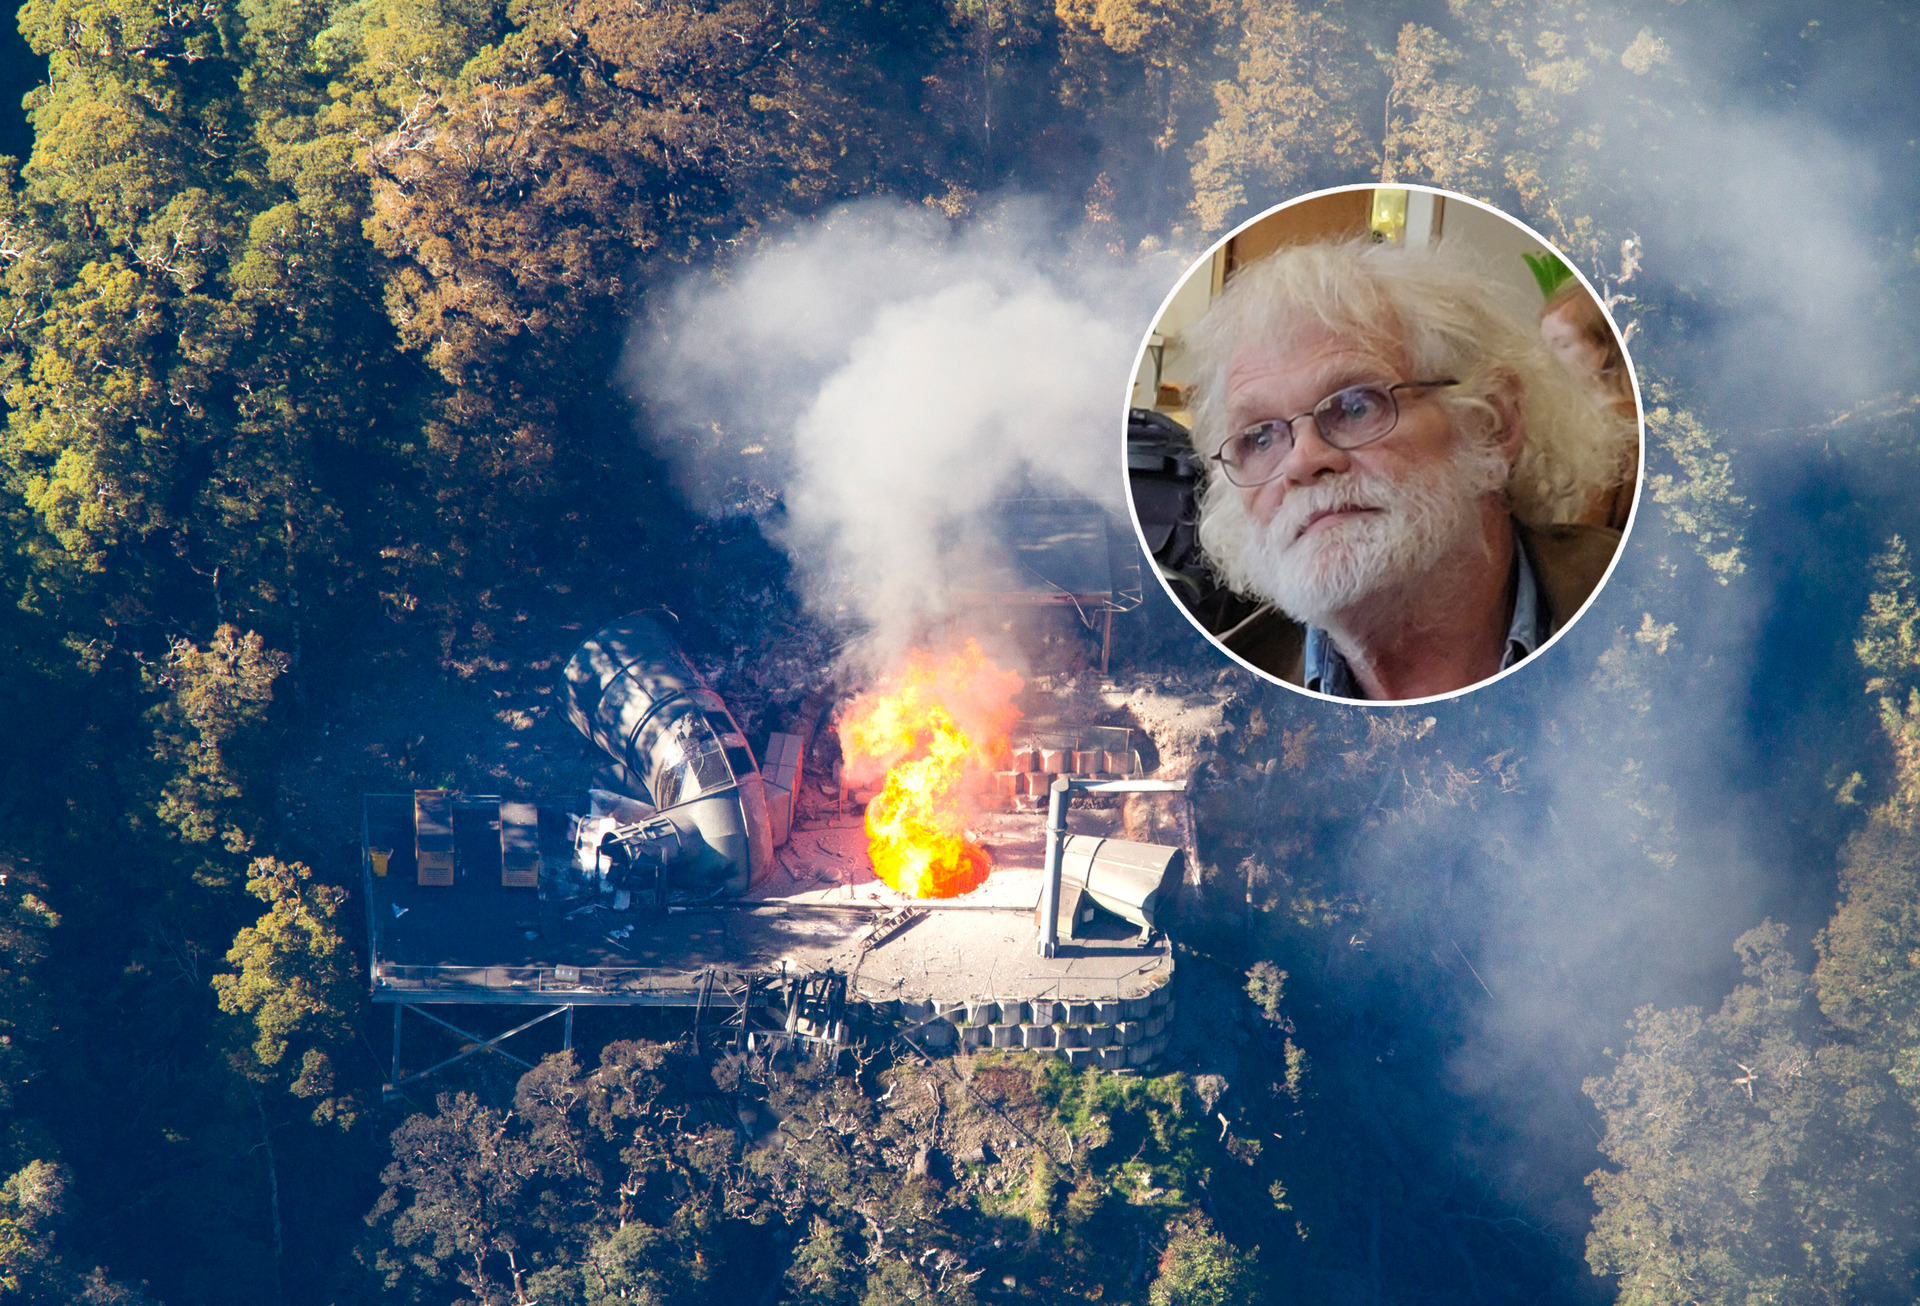 Pike River: Rick Durbridge tells of anguish of 'bullying' son to work at mine before explosion